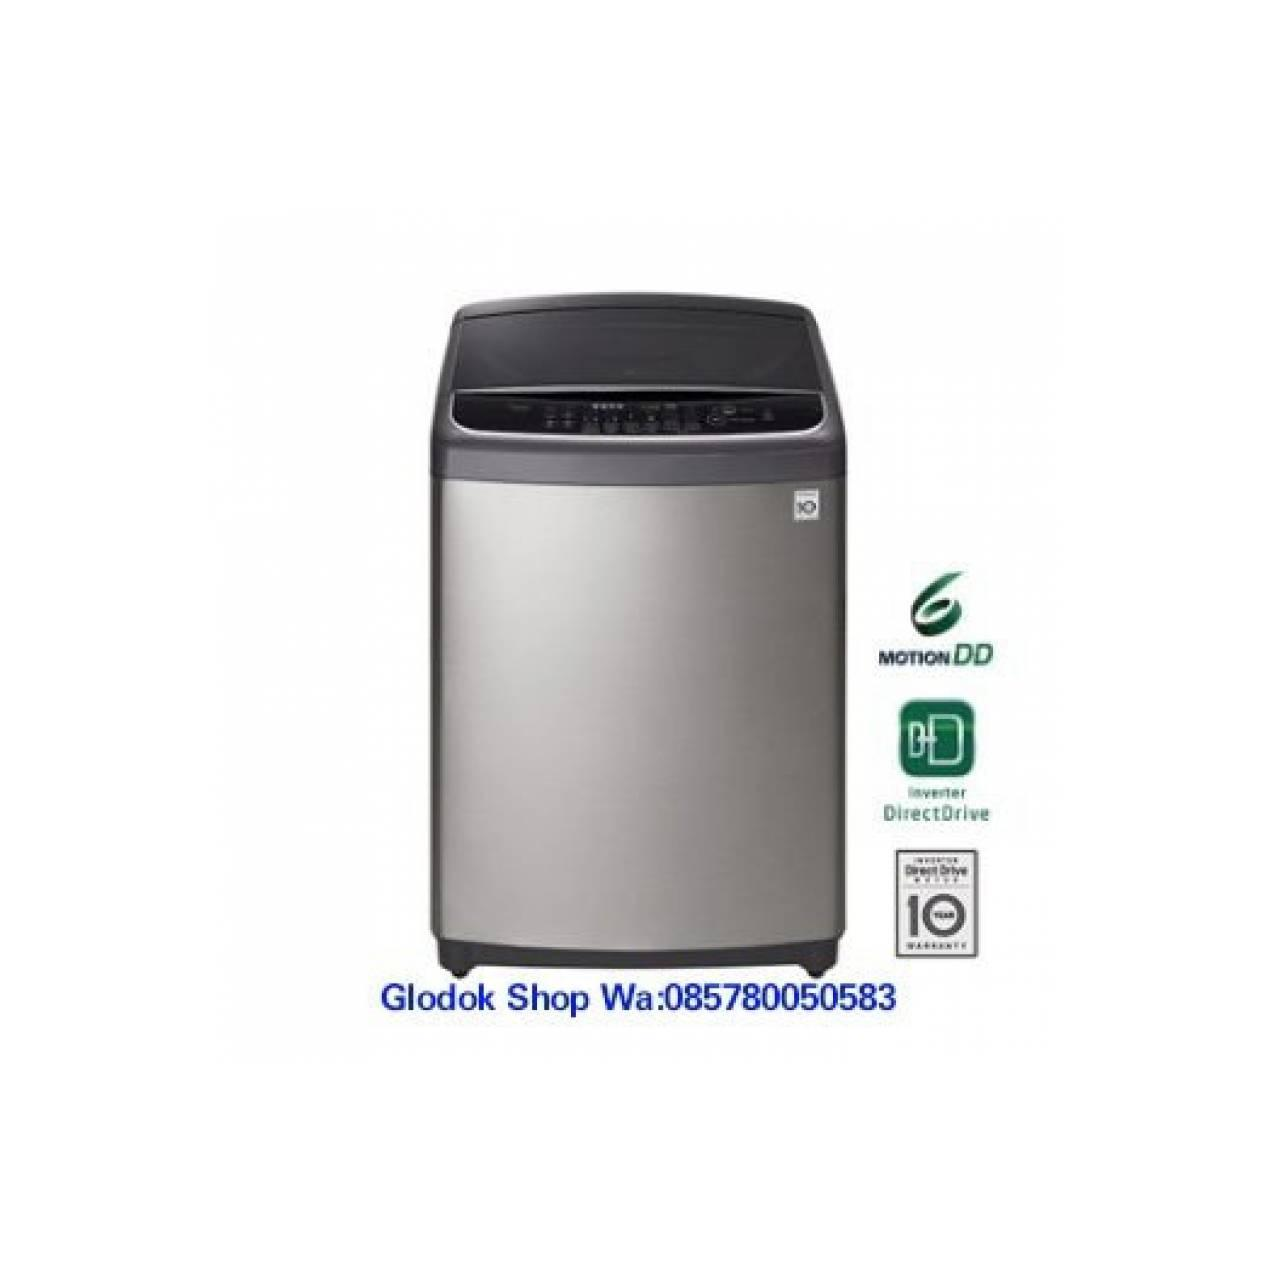 MESIN CUCI LG 18 KG T-2518DSABS INVERTER SMART THINQ 6 MOTION DD NEW